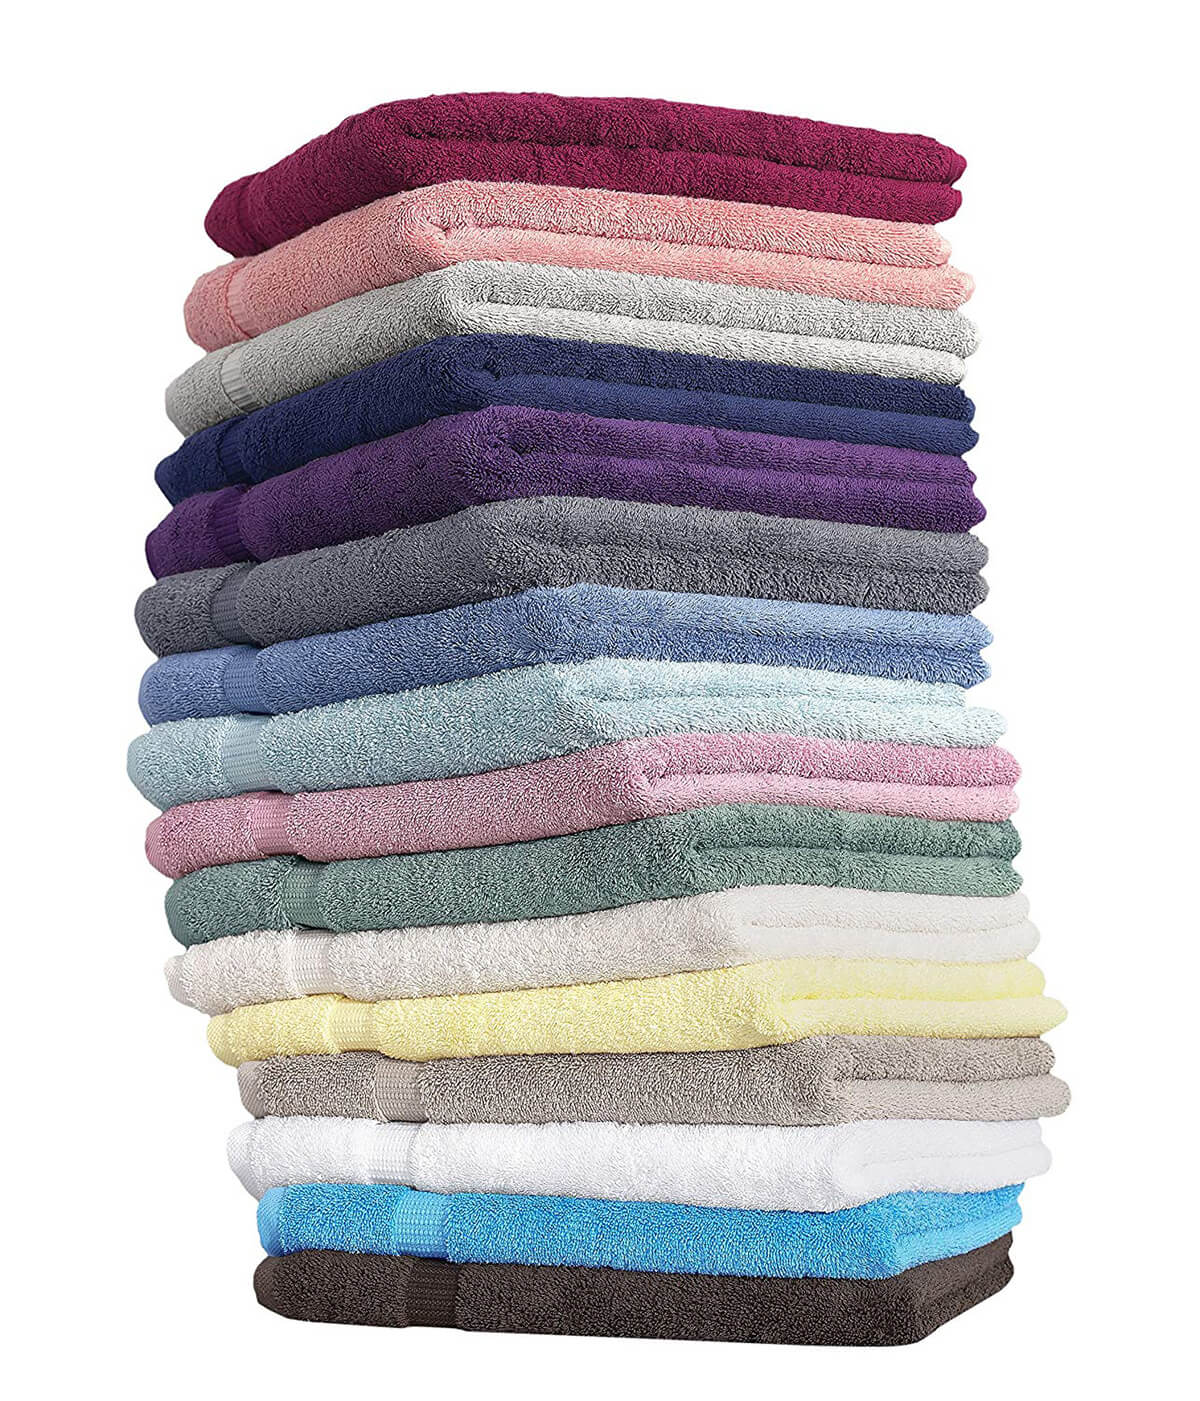 Luxury Hotel & Spa Turkish Cotton 6-Piece Eco-Friendly Hand Towel Set by SALBAKOS